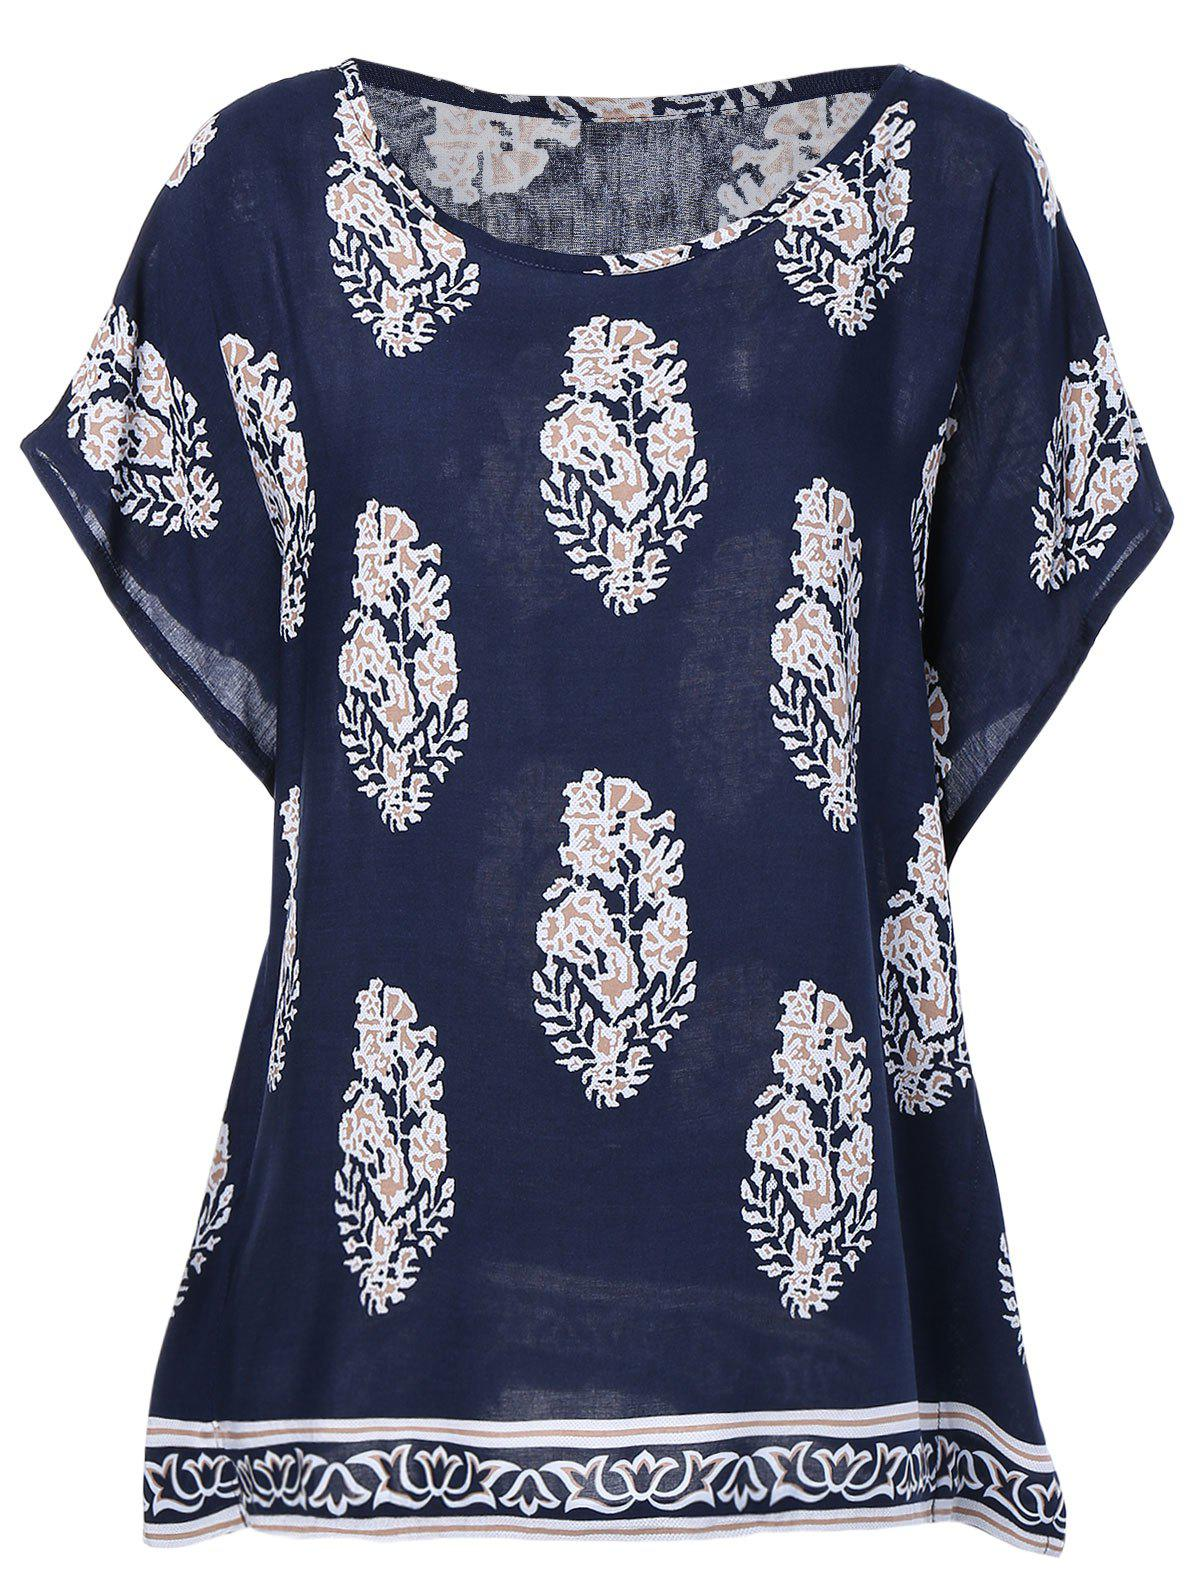 Ethnic Style Women's Round Neck Print Short Sleeves Top